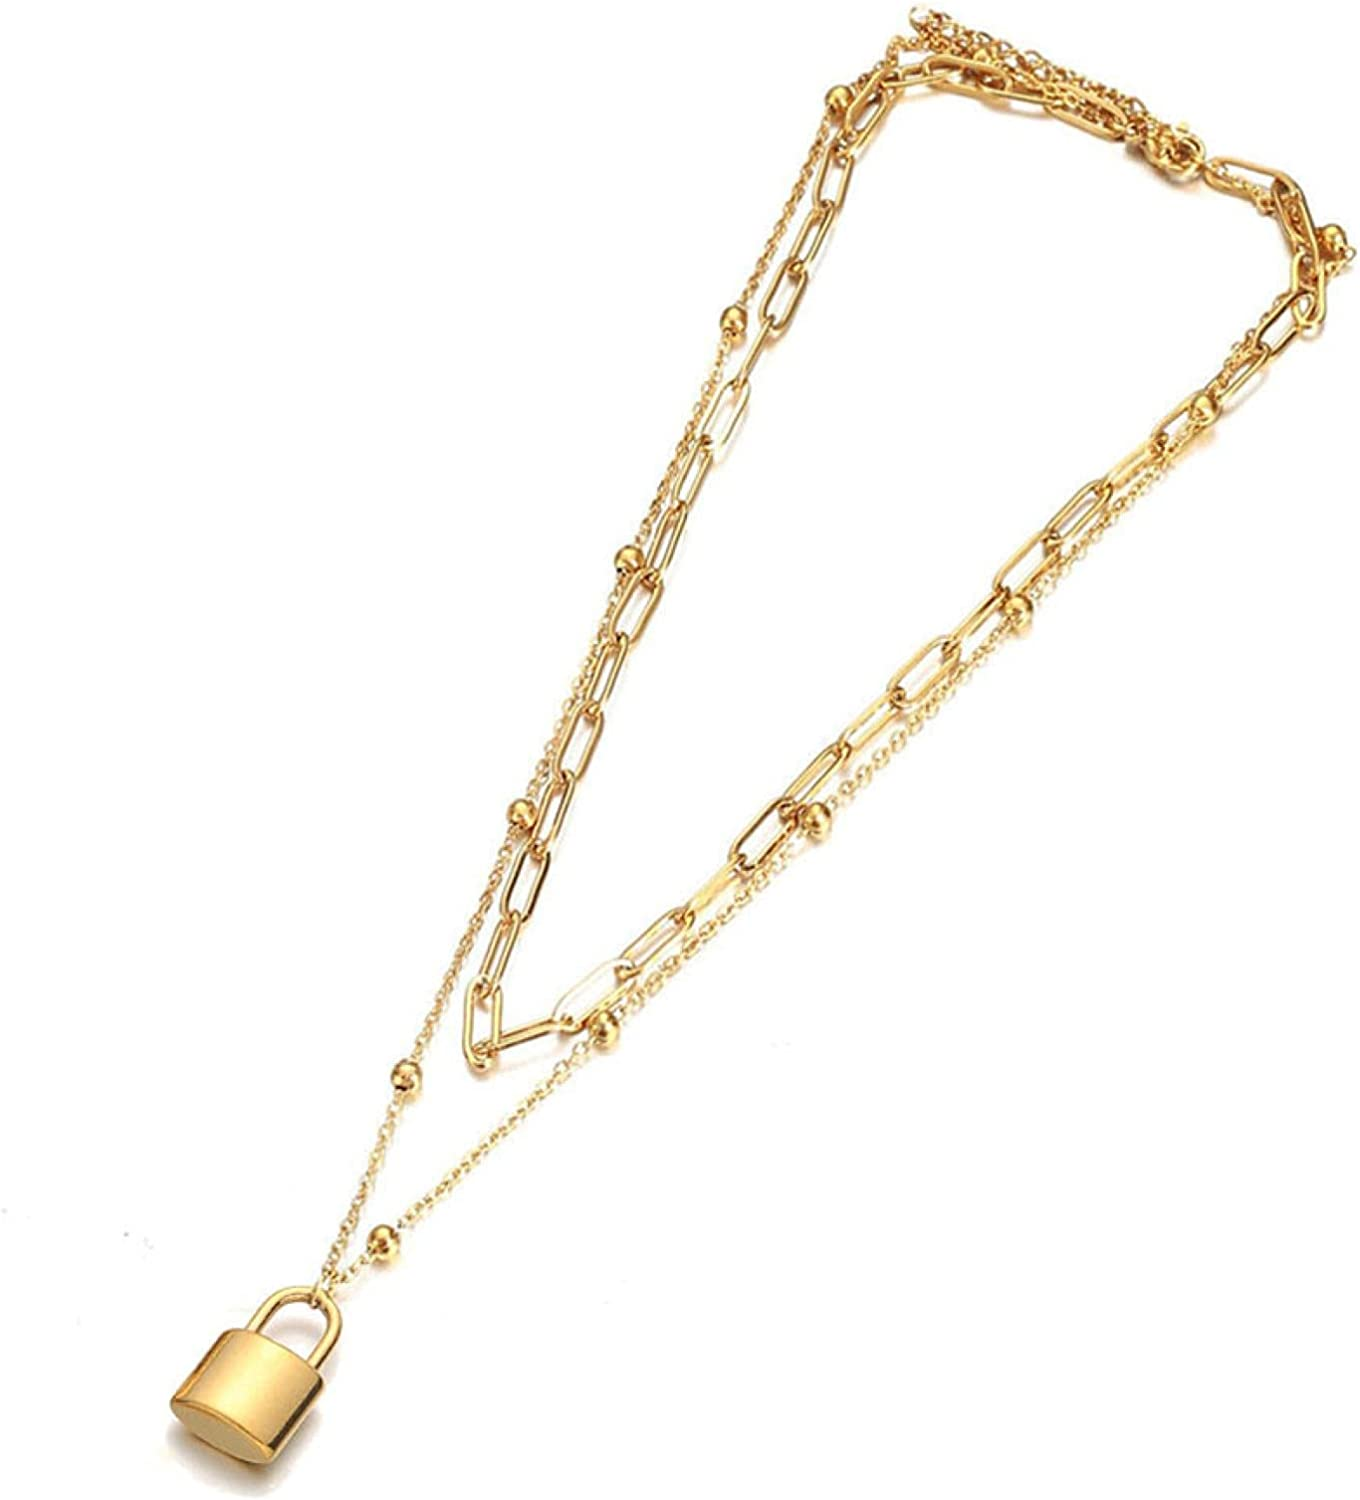 Punk Multilayer Chains Gold Color Stainless Steel Heart Pendant Choker Necklaces for Women Collar Jewlery